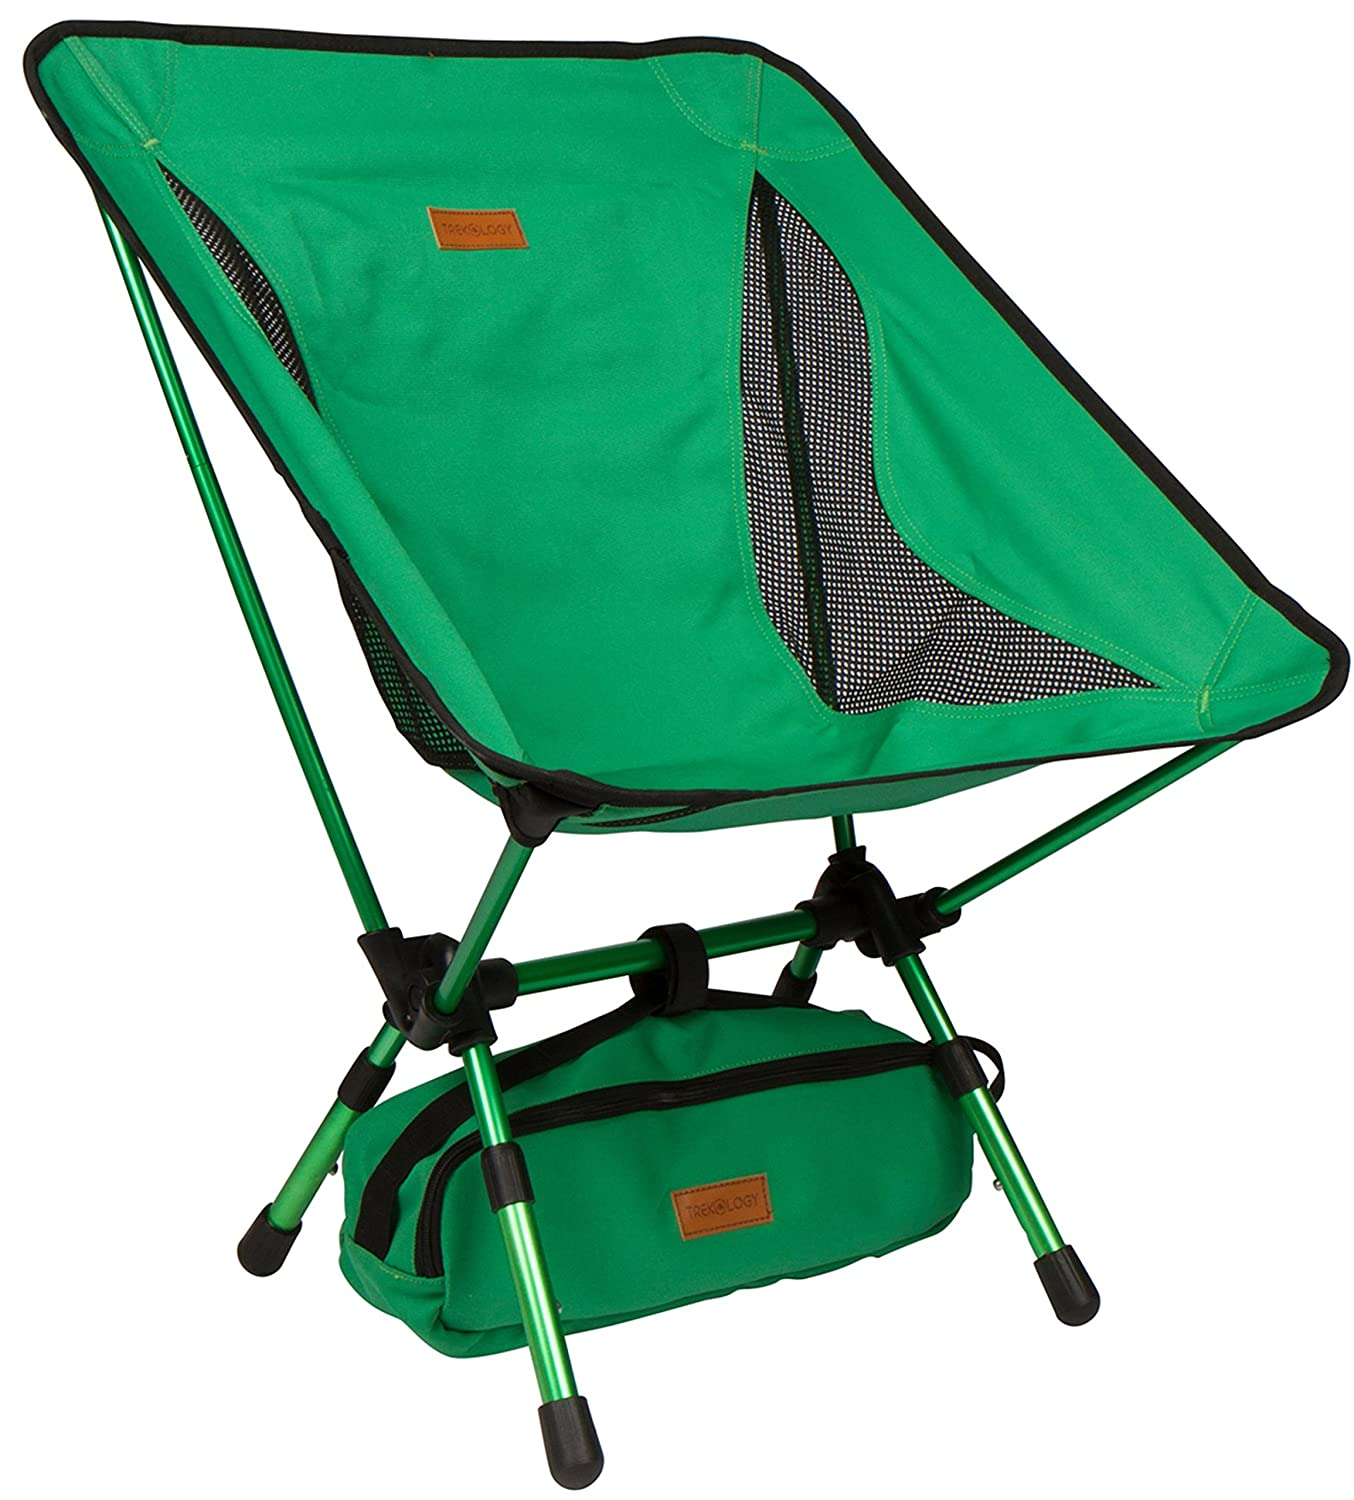 Amazon Trekology YIZI GO Portable Camping Chair with